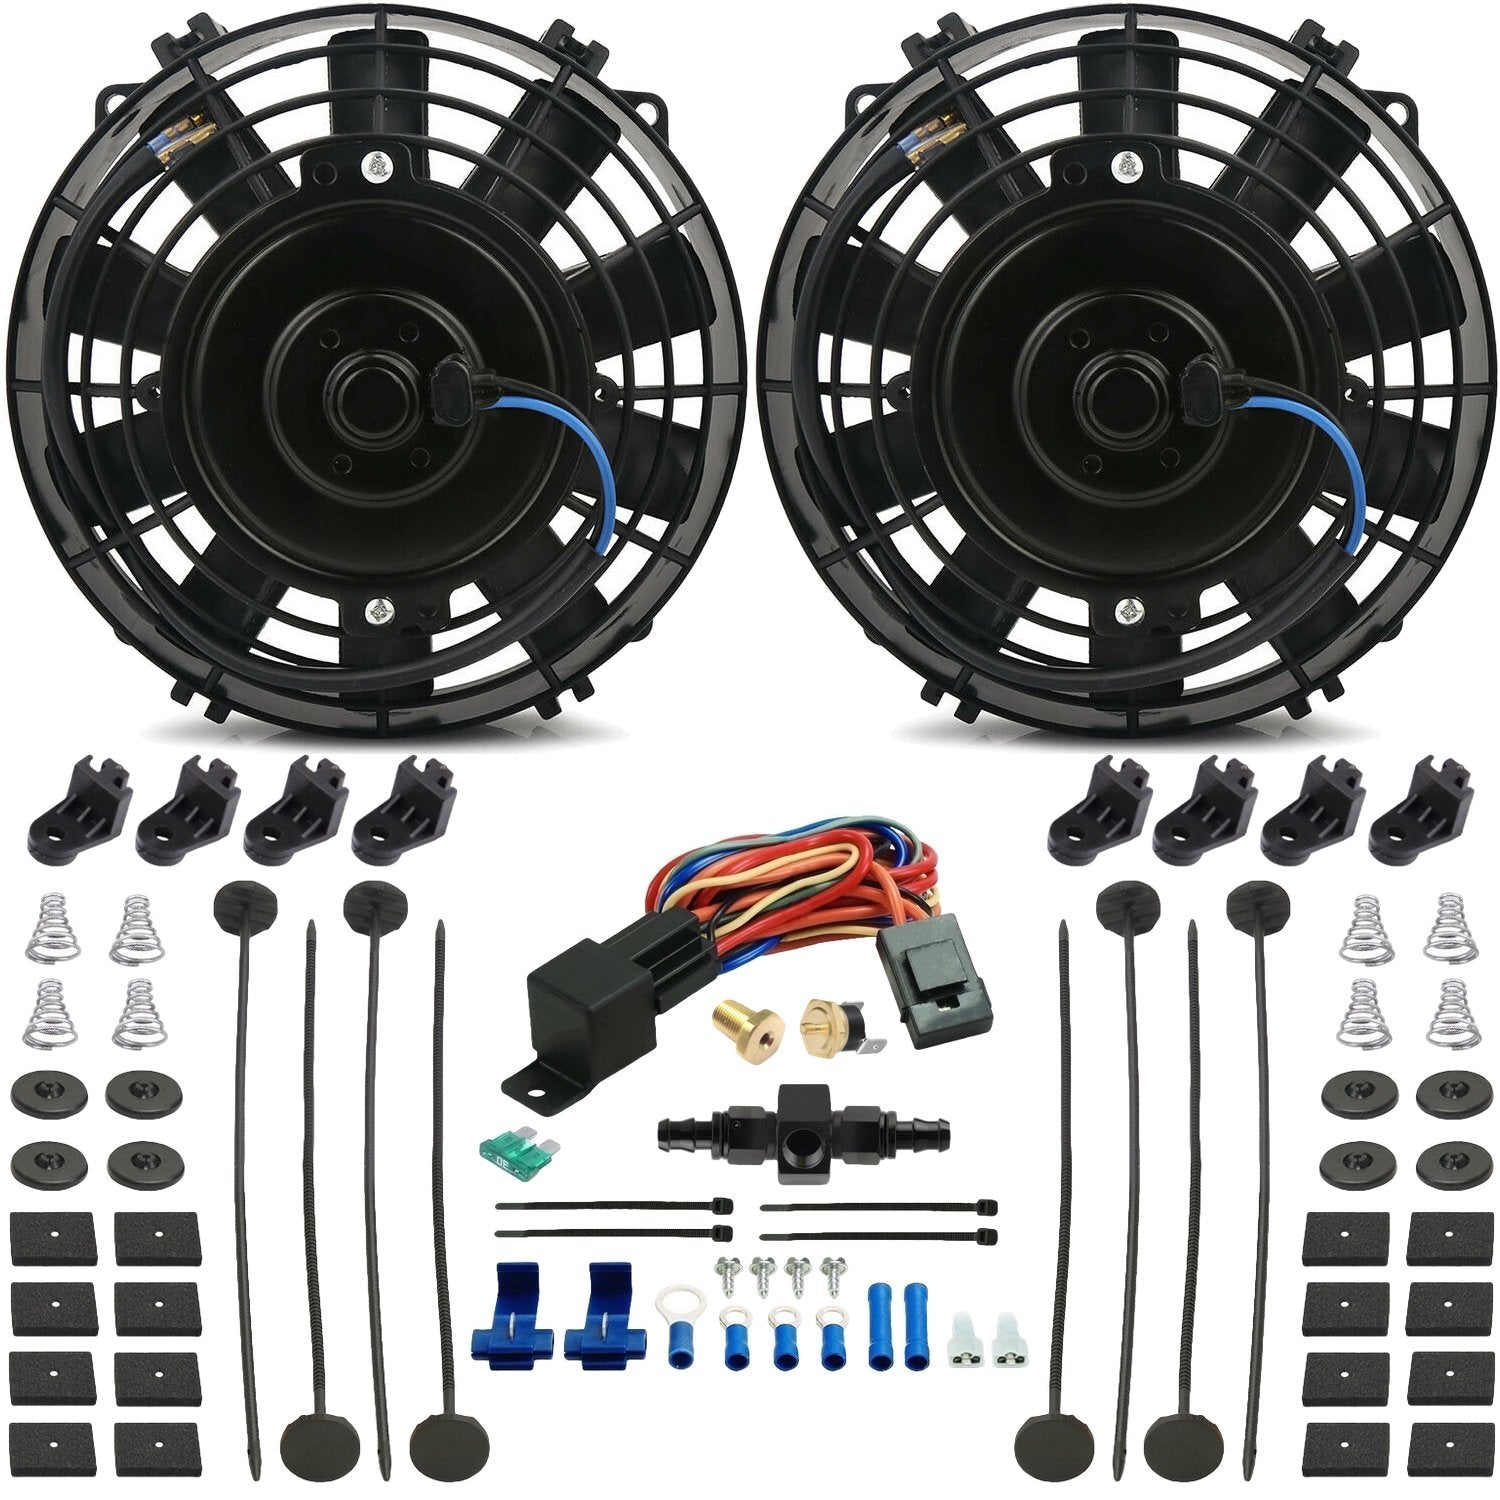 "Dual 7"" Inch Electric Engine Radiator Cooling Fans In-Hose AN Fitting Thermostat Temp Switch Kit-Dual Electric Fans-American Volt-4AN-140'F On - 125'F Off-American Volt"